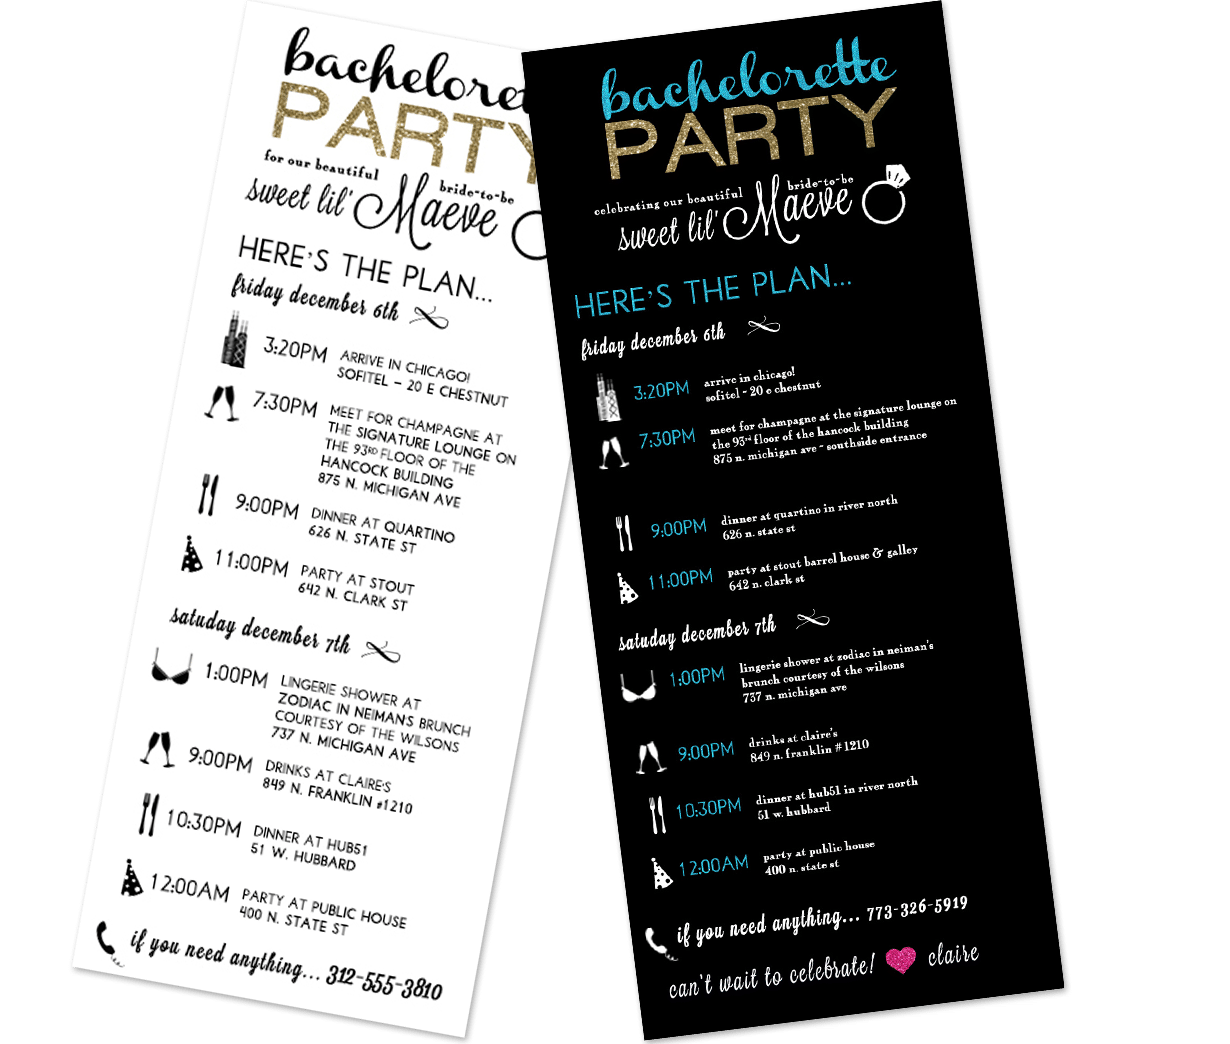 Bachelorette Party | Invitation Design